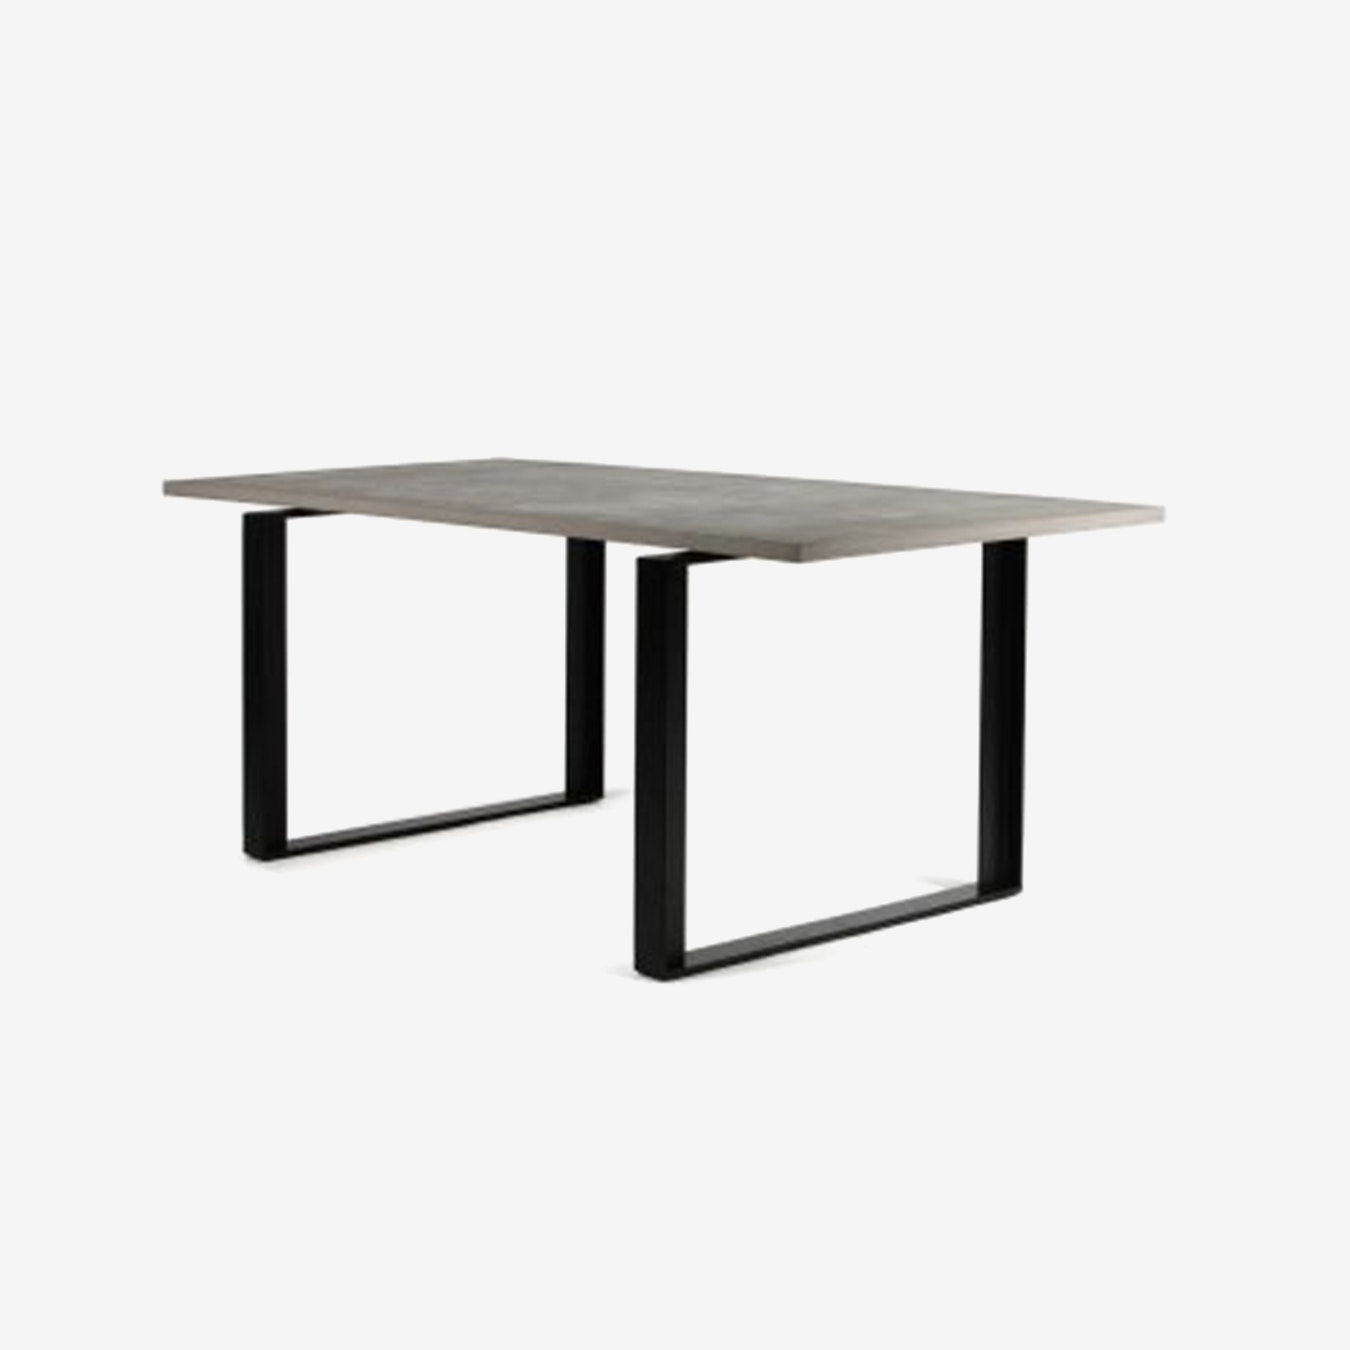 Black Powder Coated Alps Dining Table